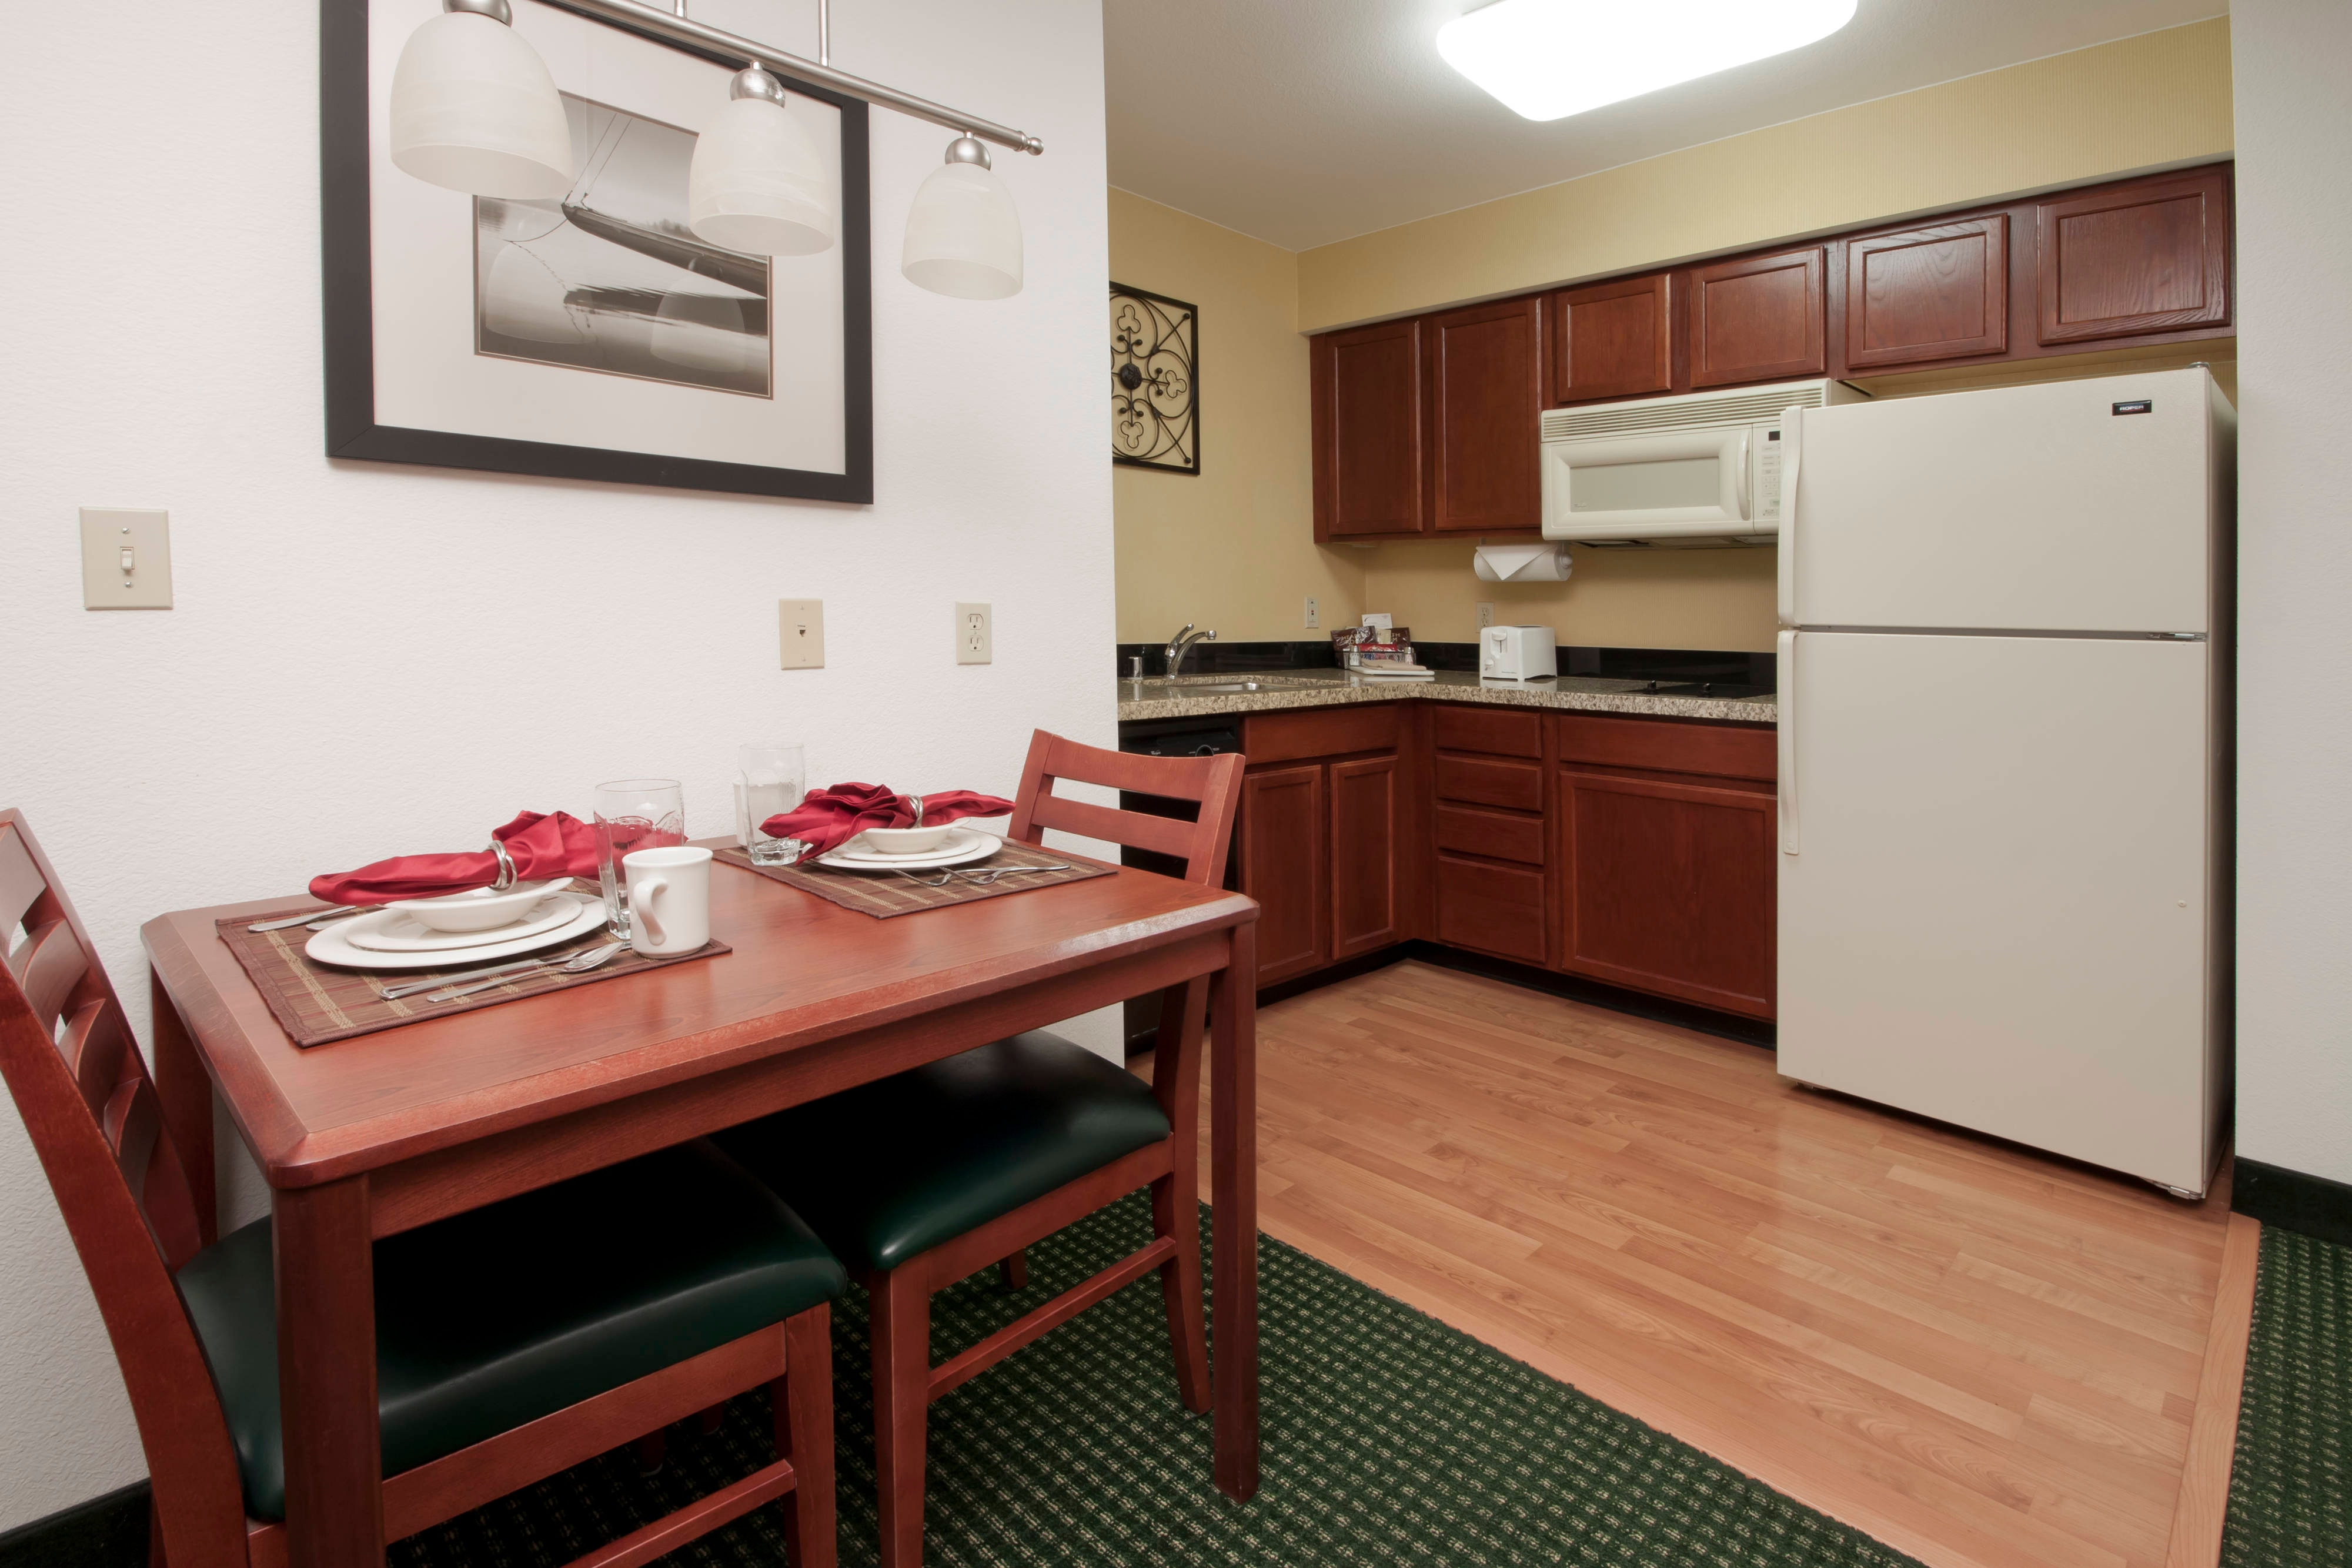 Palmdale California Hotel Studio Kitchen